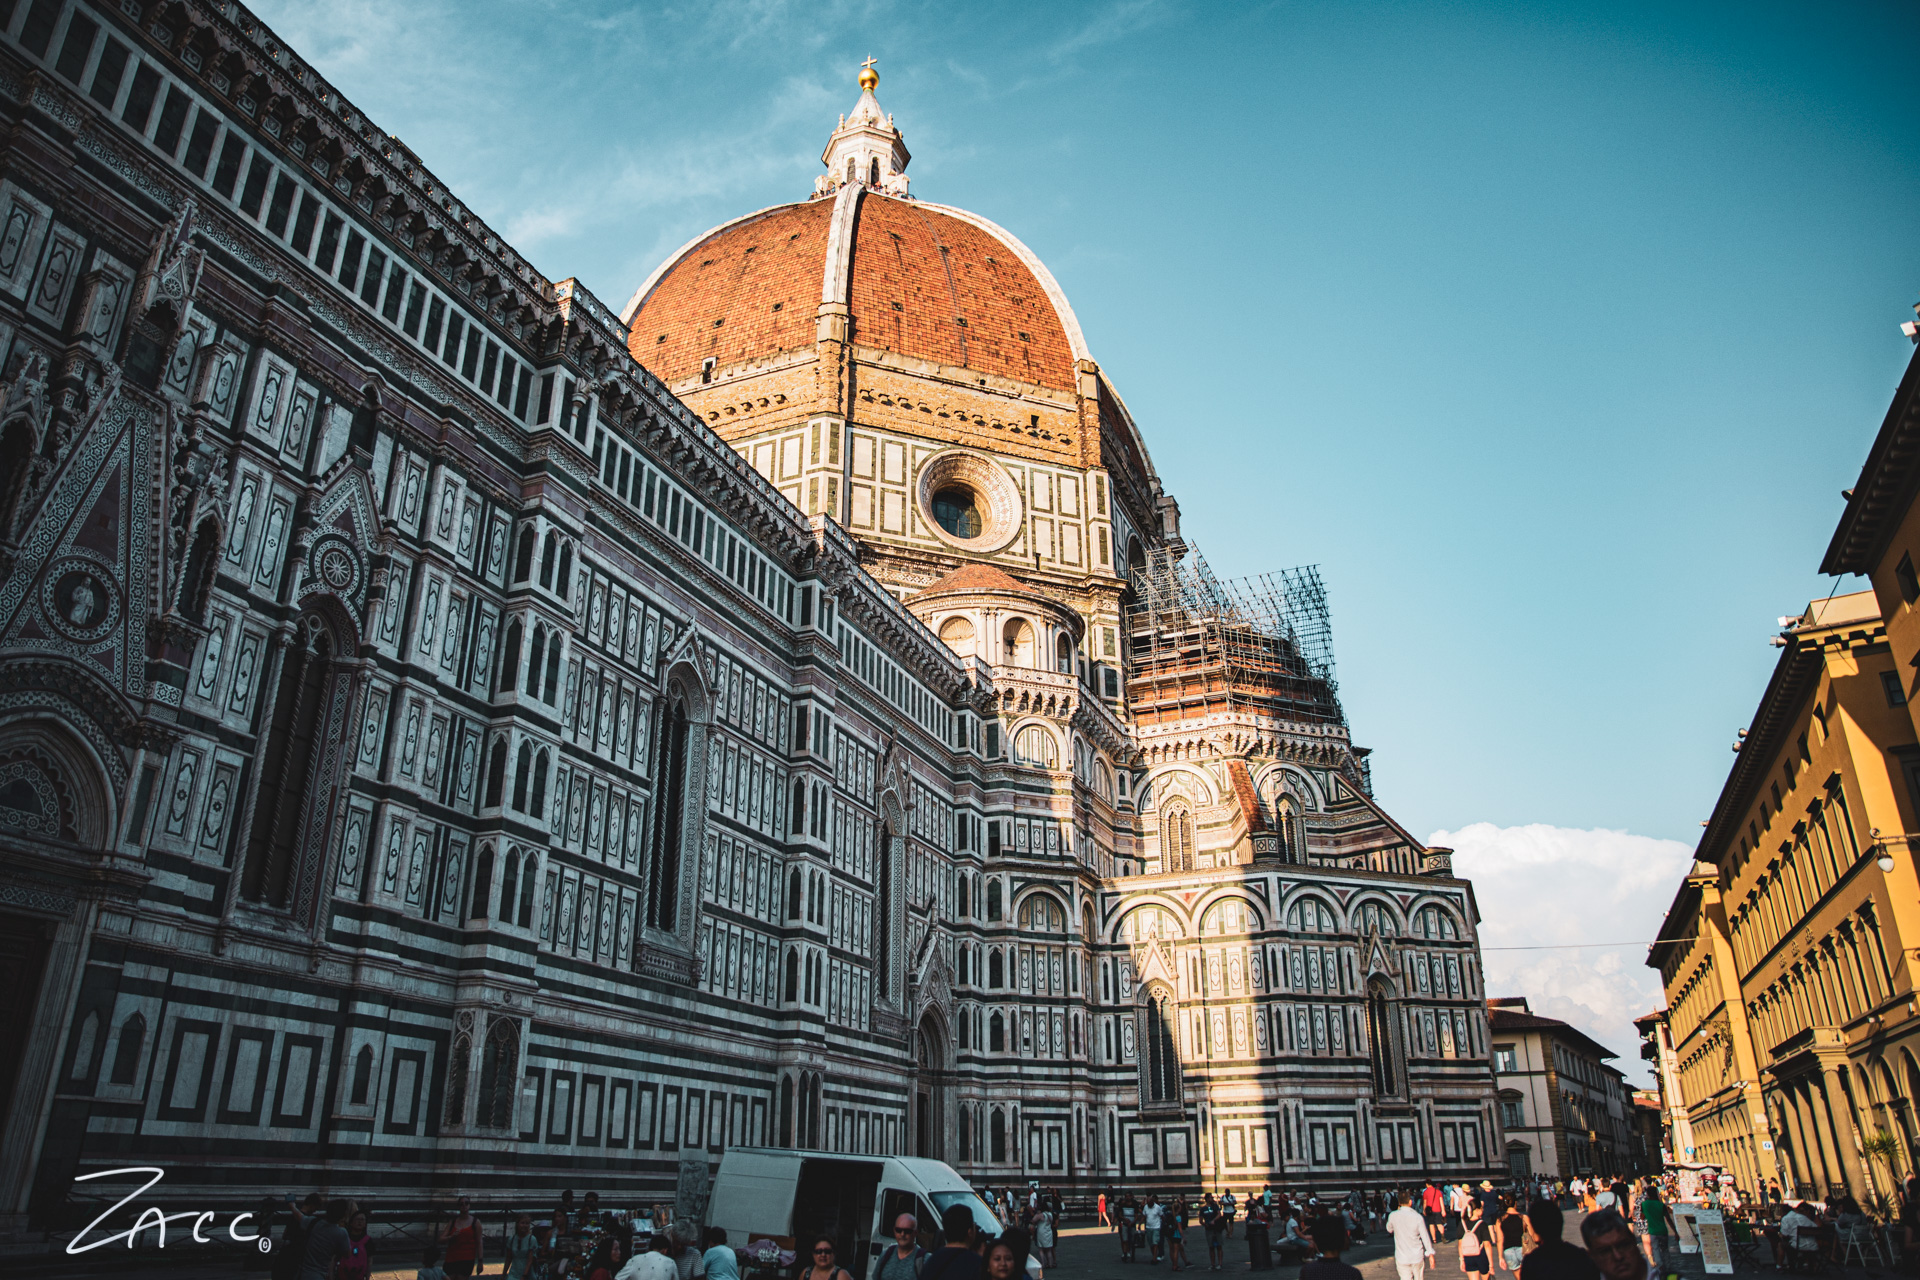 Zacc in Florence - Italy - July 2019